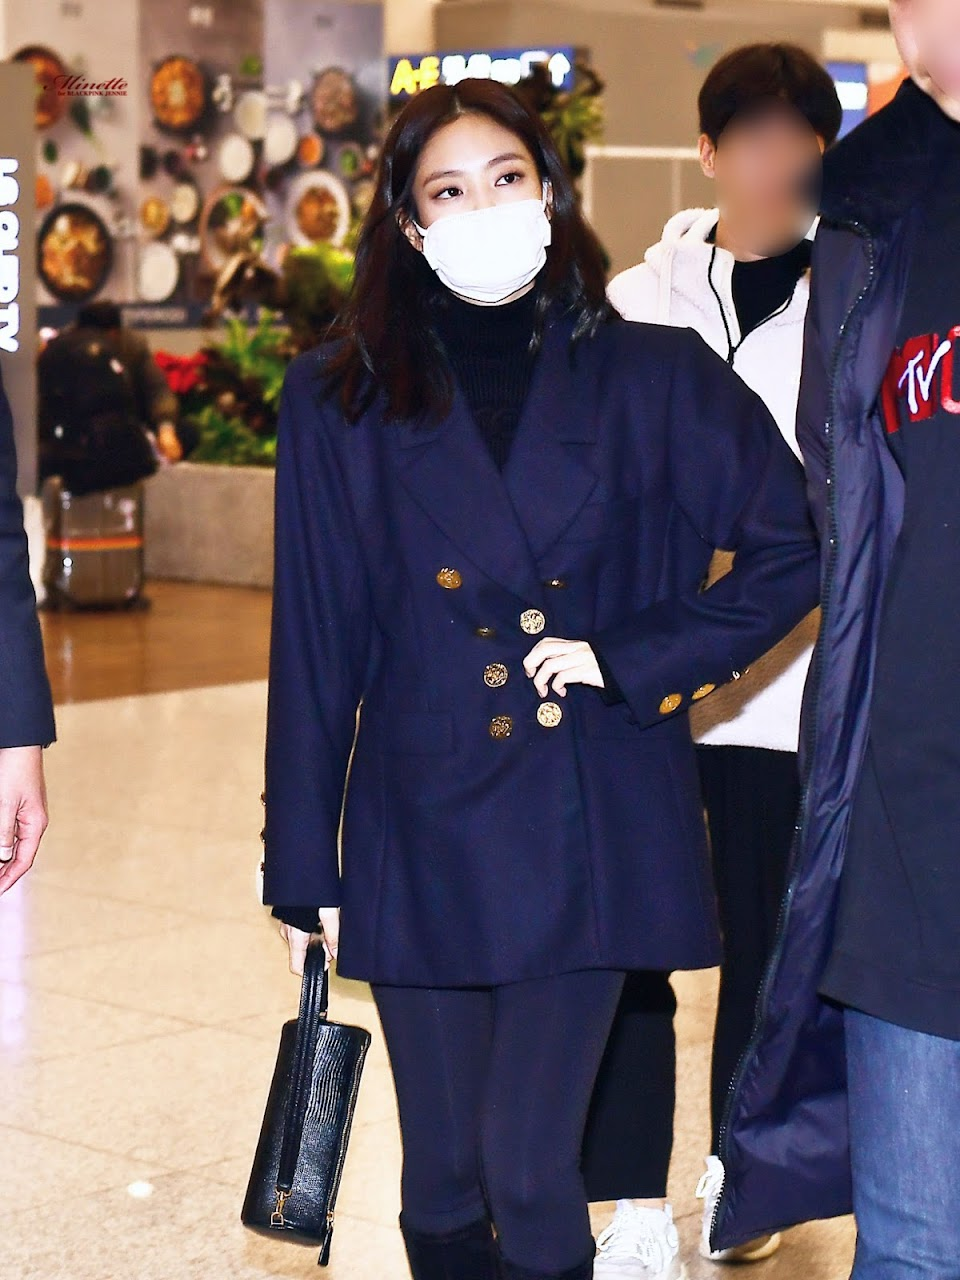 blackpink jennie airport fashion 2019 8